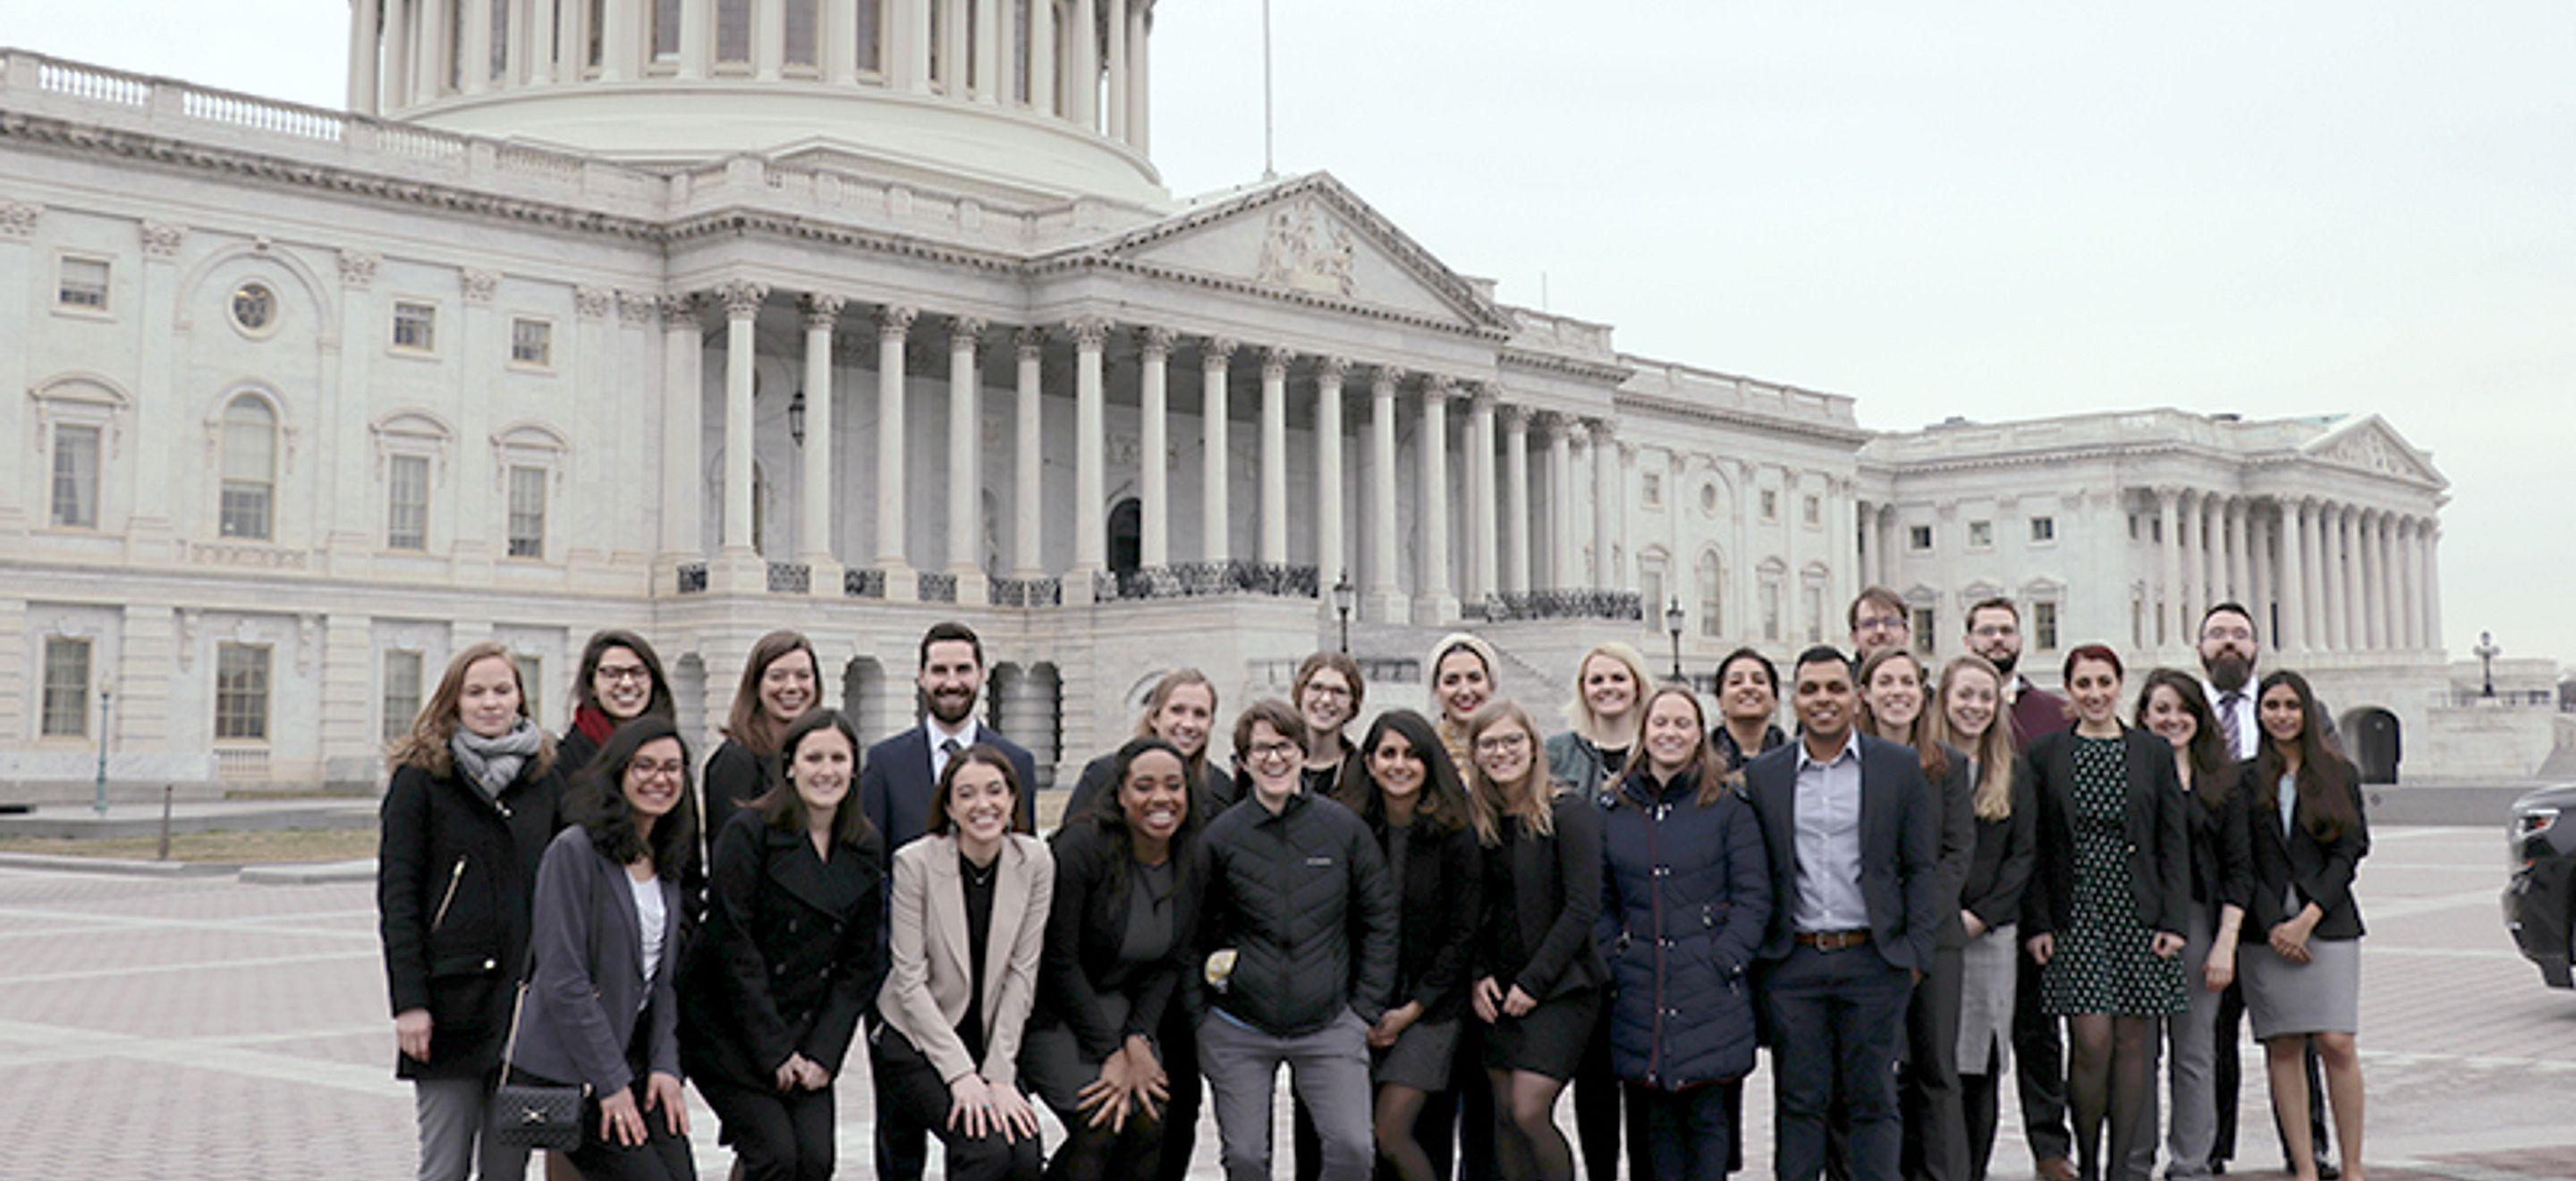 A group of 26 people - IRAP staff and law students stand in front of the U.S. Capitol building.